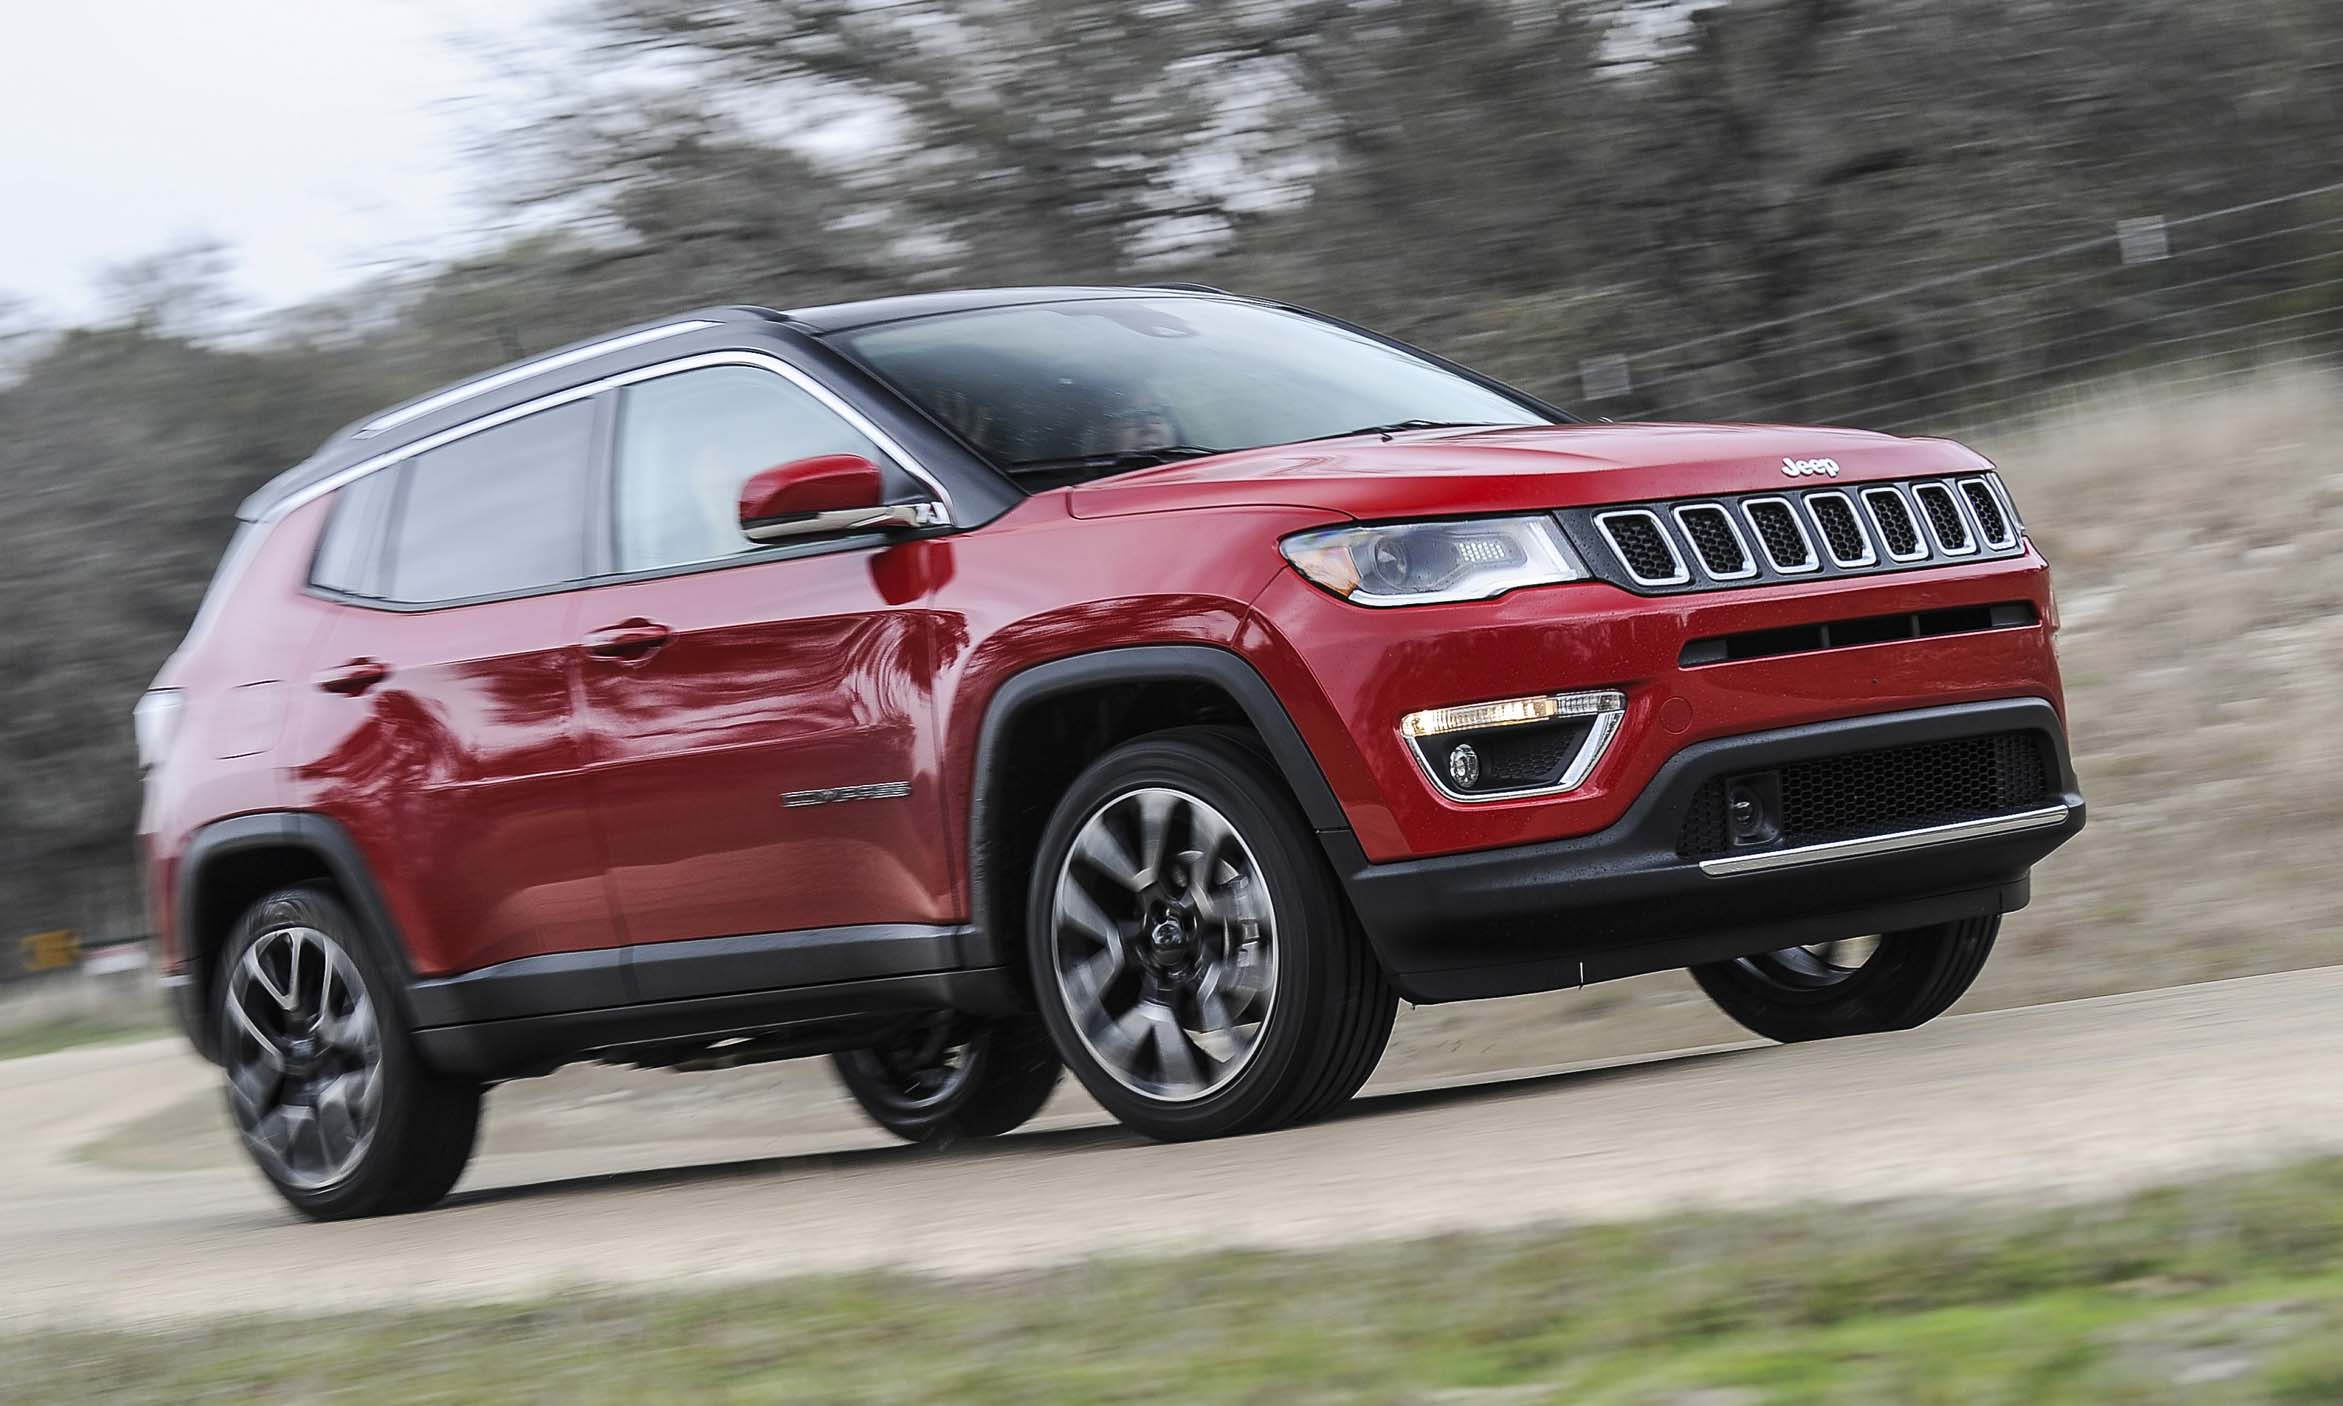 medium resolution of number of vehicles affected 2 761 report date may 1 2018 issue chrysler fca us llc is recalling certain 2018 jeep compass vehicles